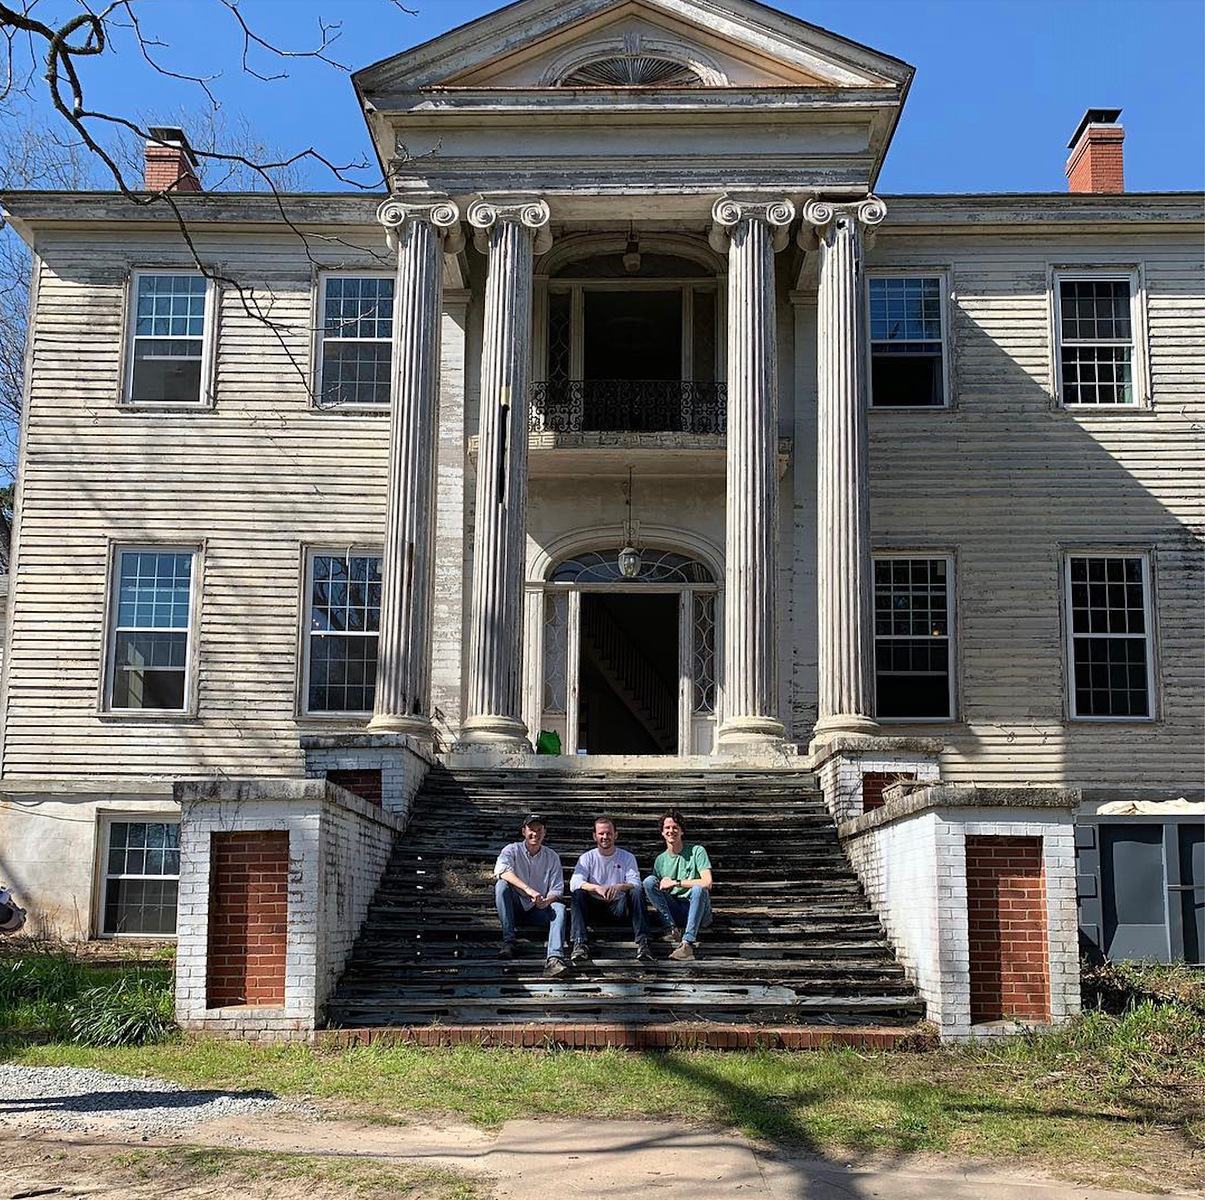 (Left to right) Ross Sheppard, Jacob Hawkins and Will Walker at the pre-renovated c. 1838 Samuel Rockwell House in Milledgeville.